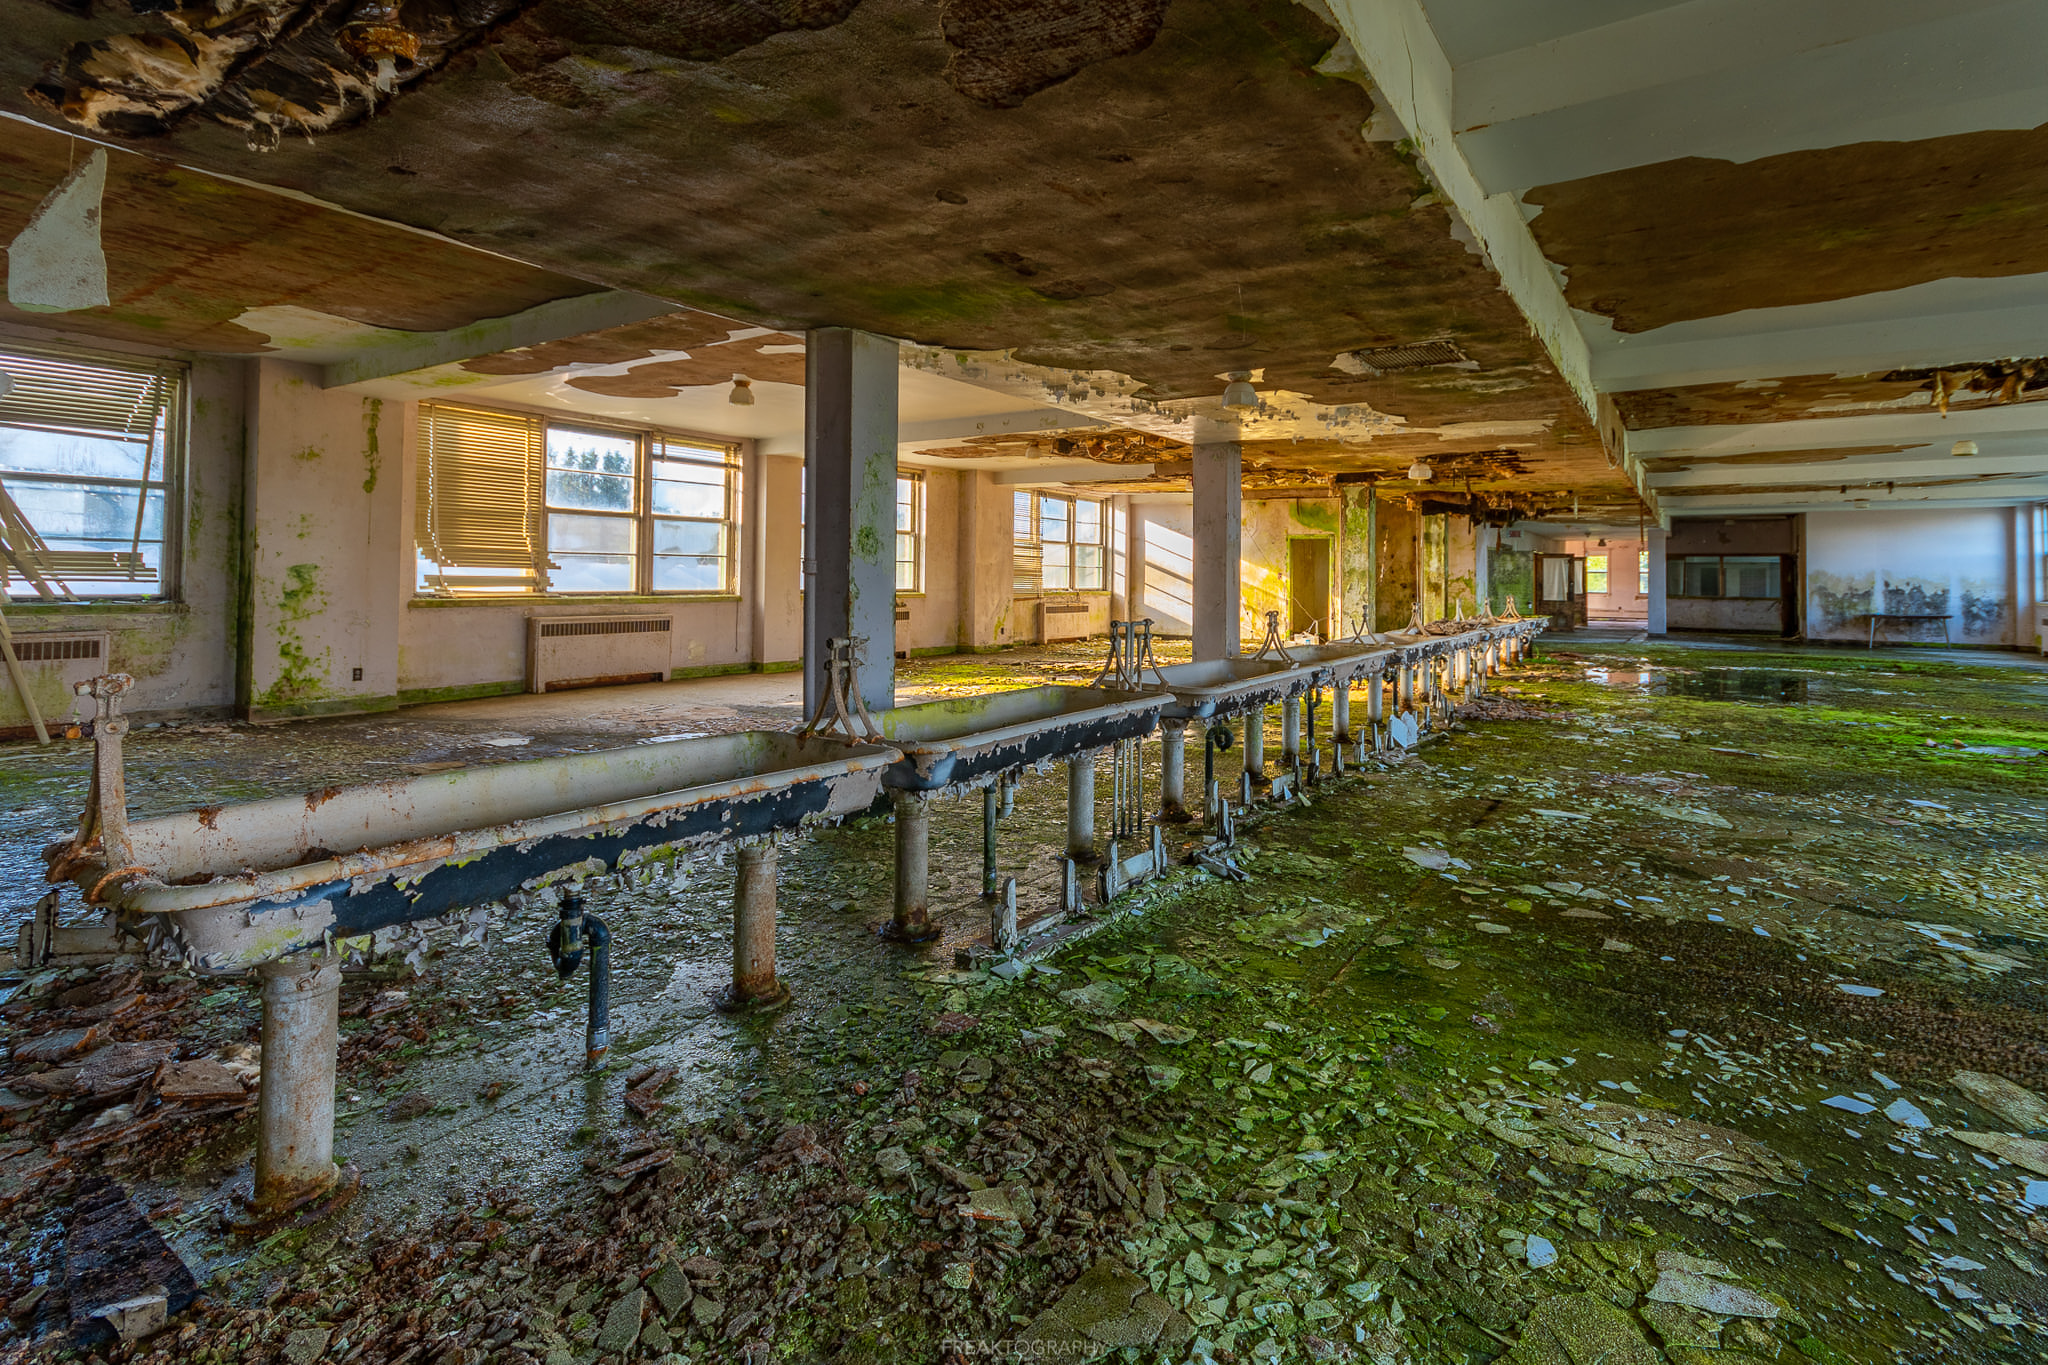 crumbling and dangerous abandoned building